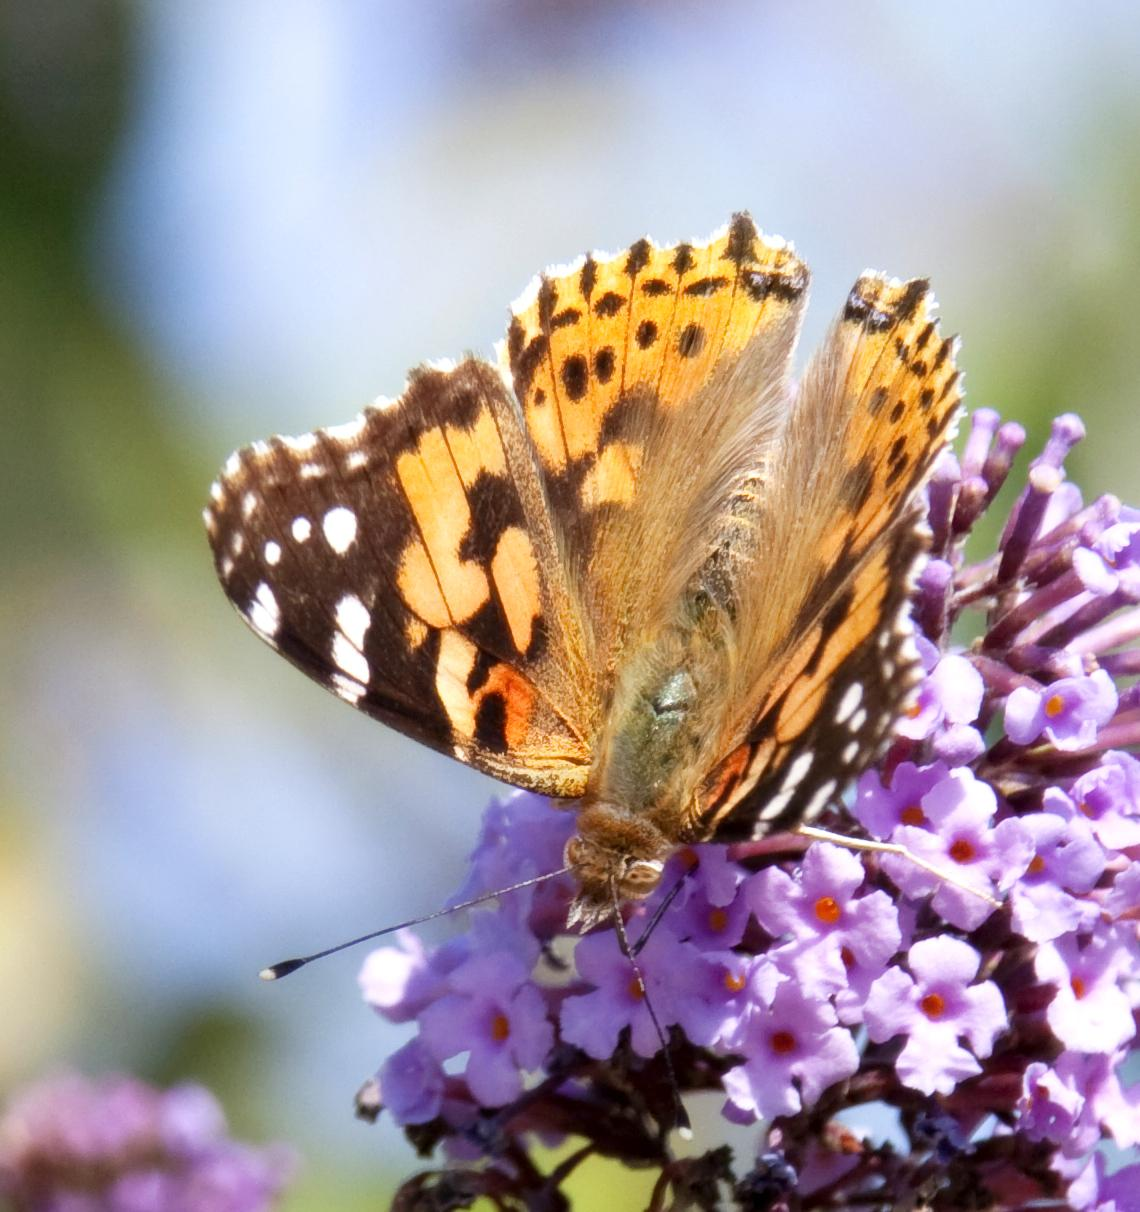 Attract Butterflies-Painted Lady Butterfly-Magnus Manske, Wikimedia Commons